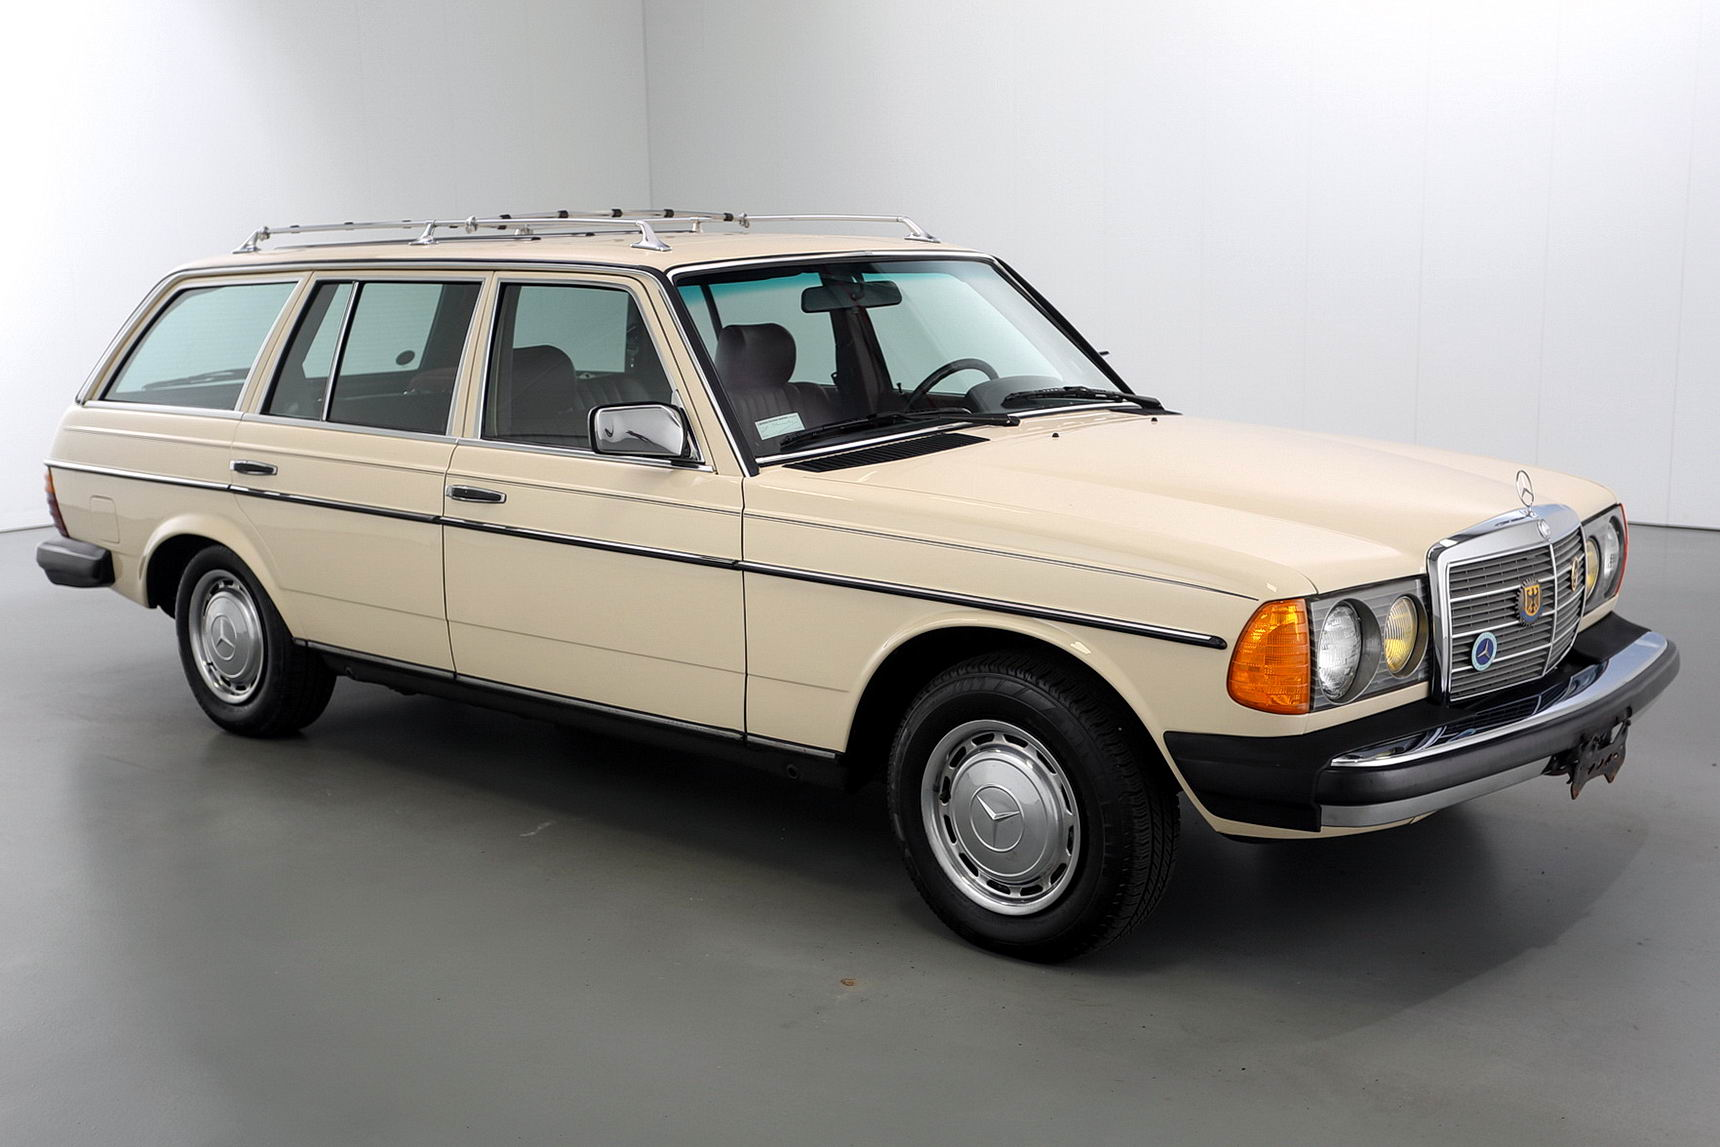 1985 mercedes benz 300td estate wagon brutal motors